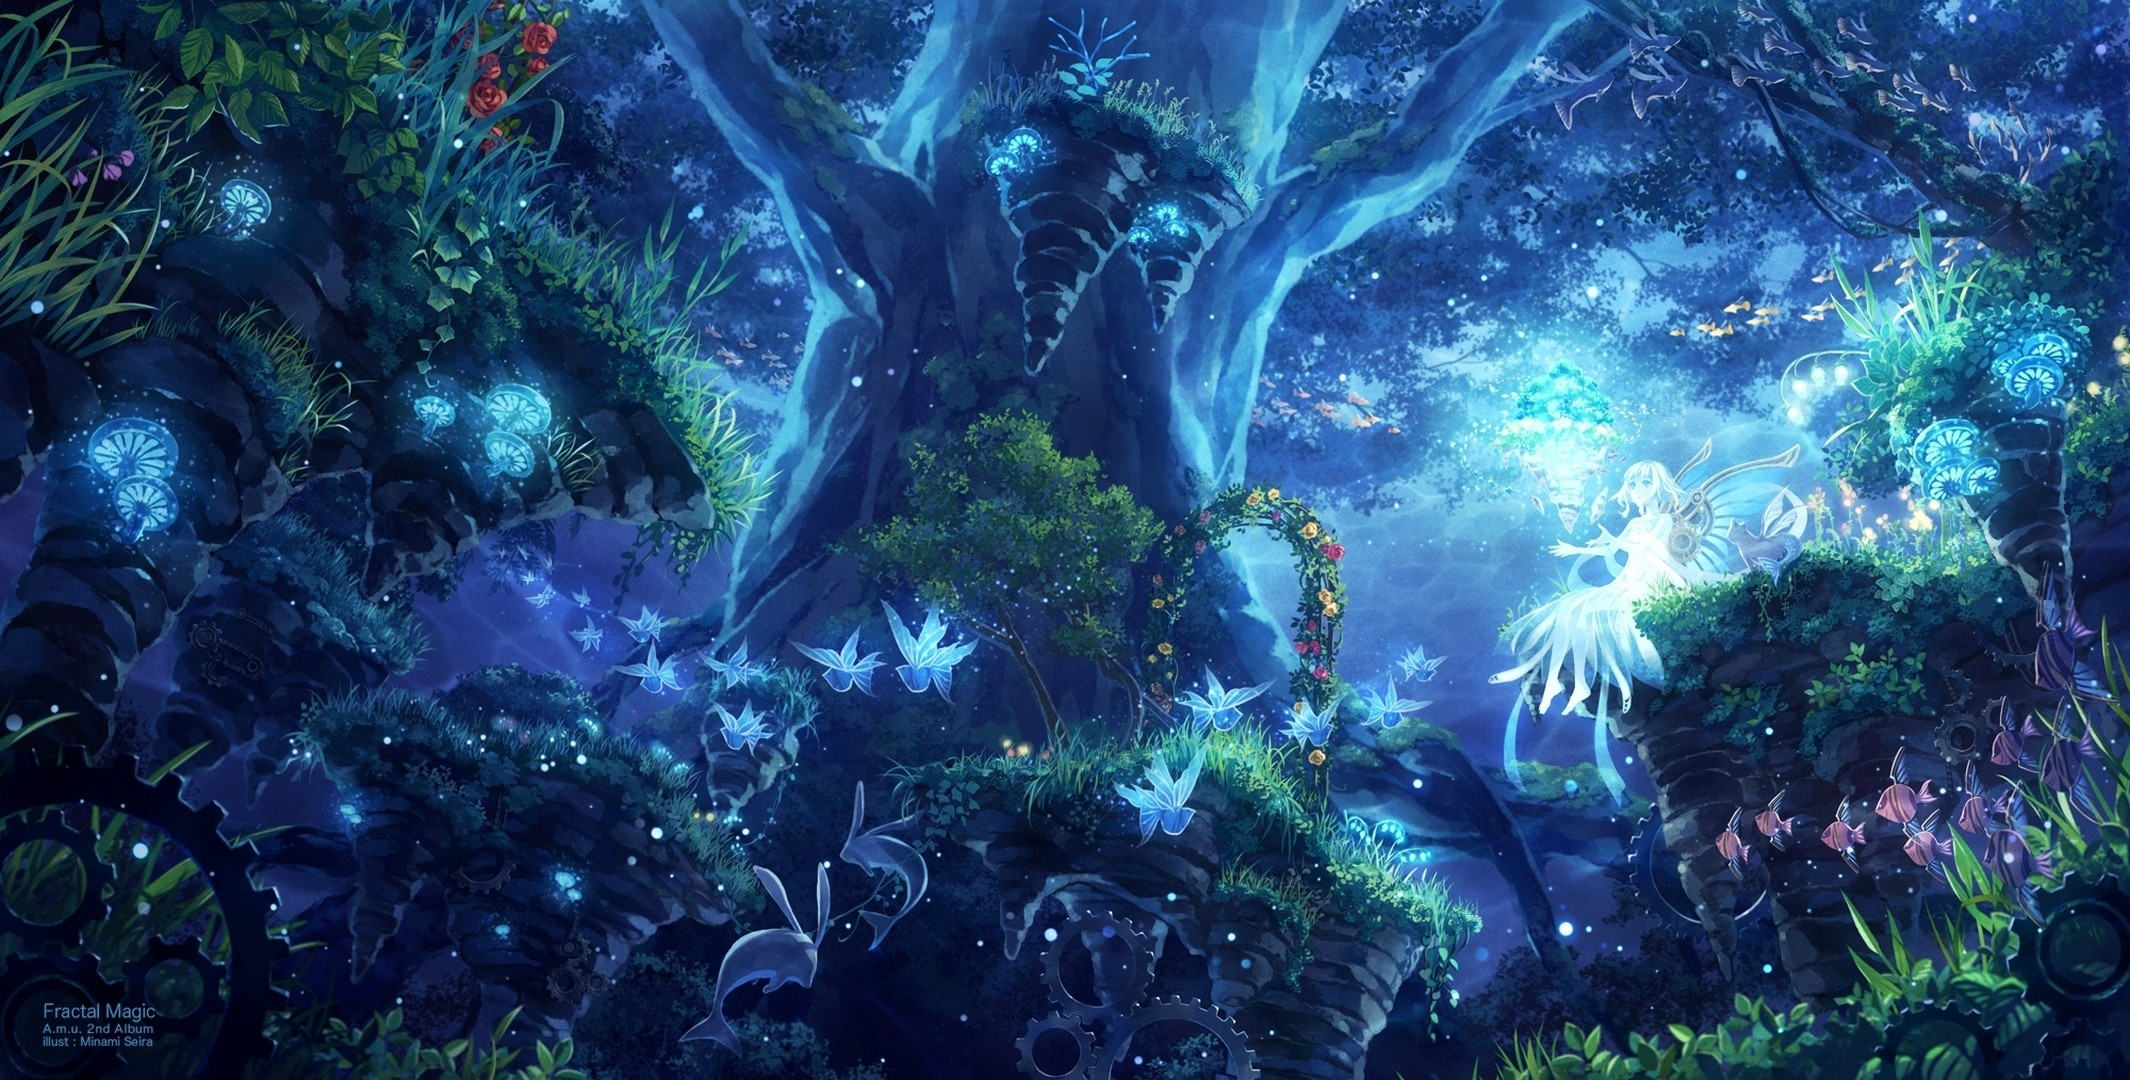 Anime Inspired Hd Fantasy Wallpapers For Your Collection: Anime Fantasy Wallpaper (74+ Images